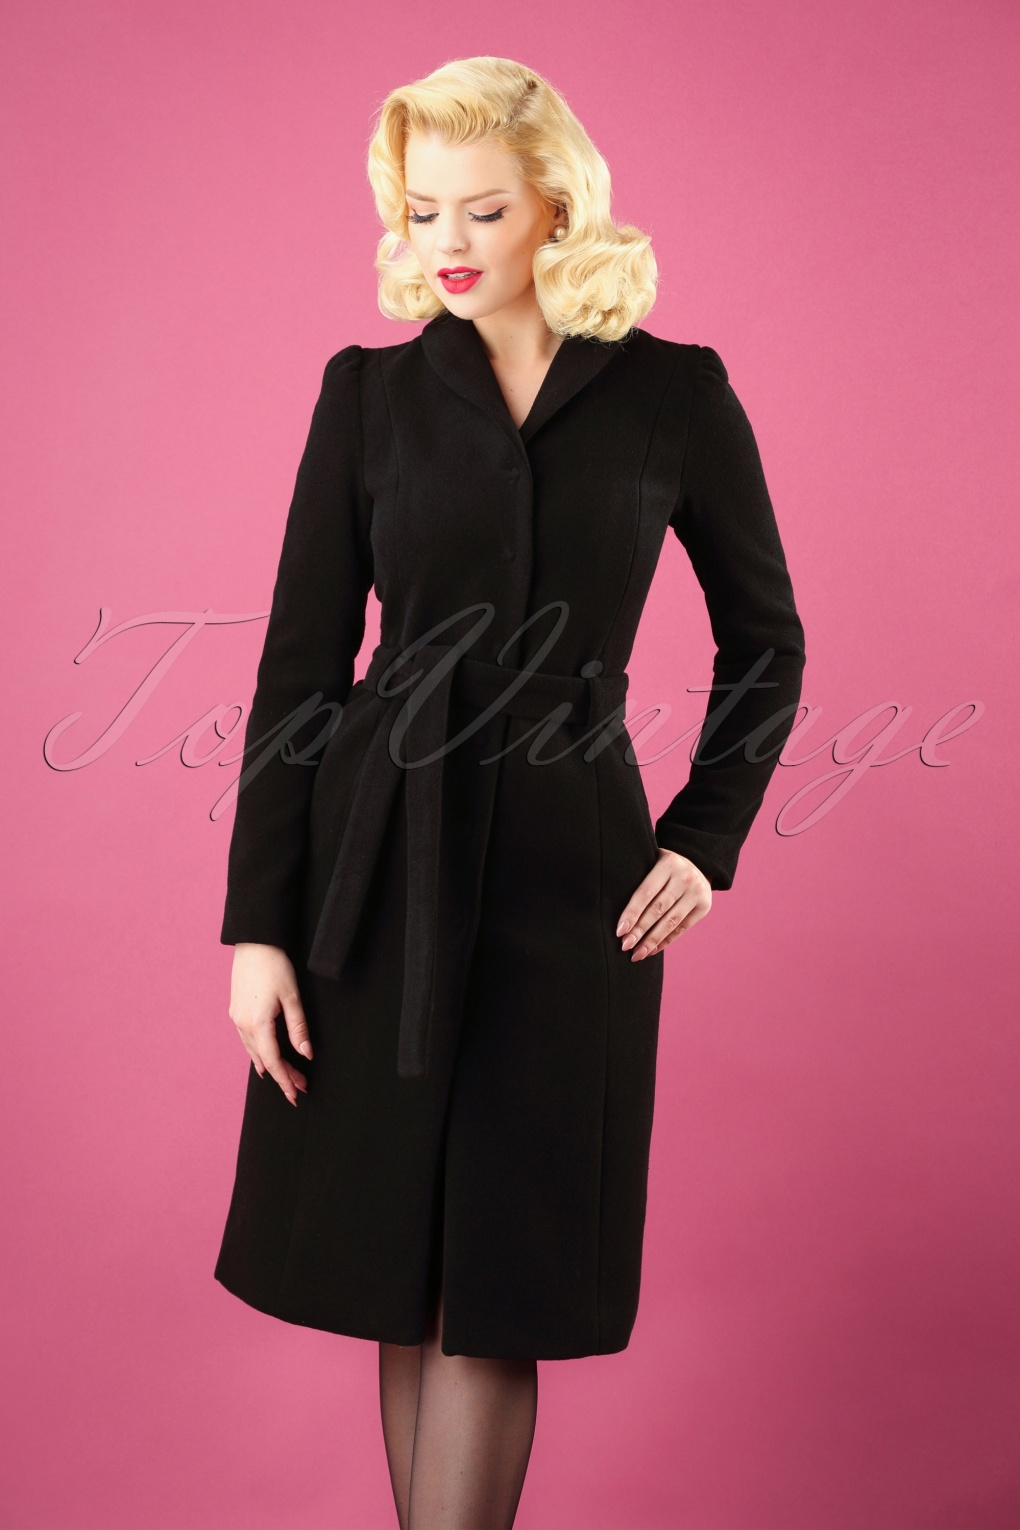 1950s Jackets, Coats, Bolero | Swing, Pin Up, Rockabilly 50s Dahlia Wool Coat in Black £233.61 AT vintagedancer.com